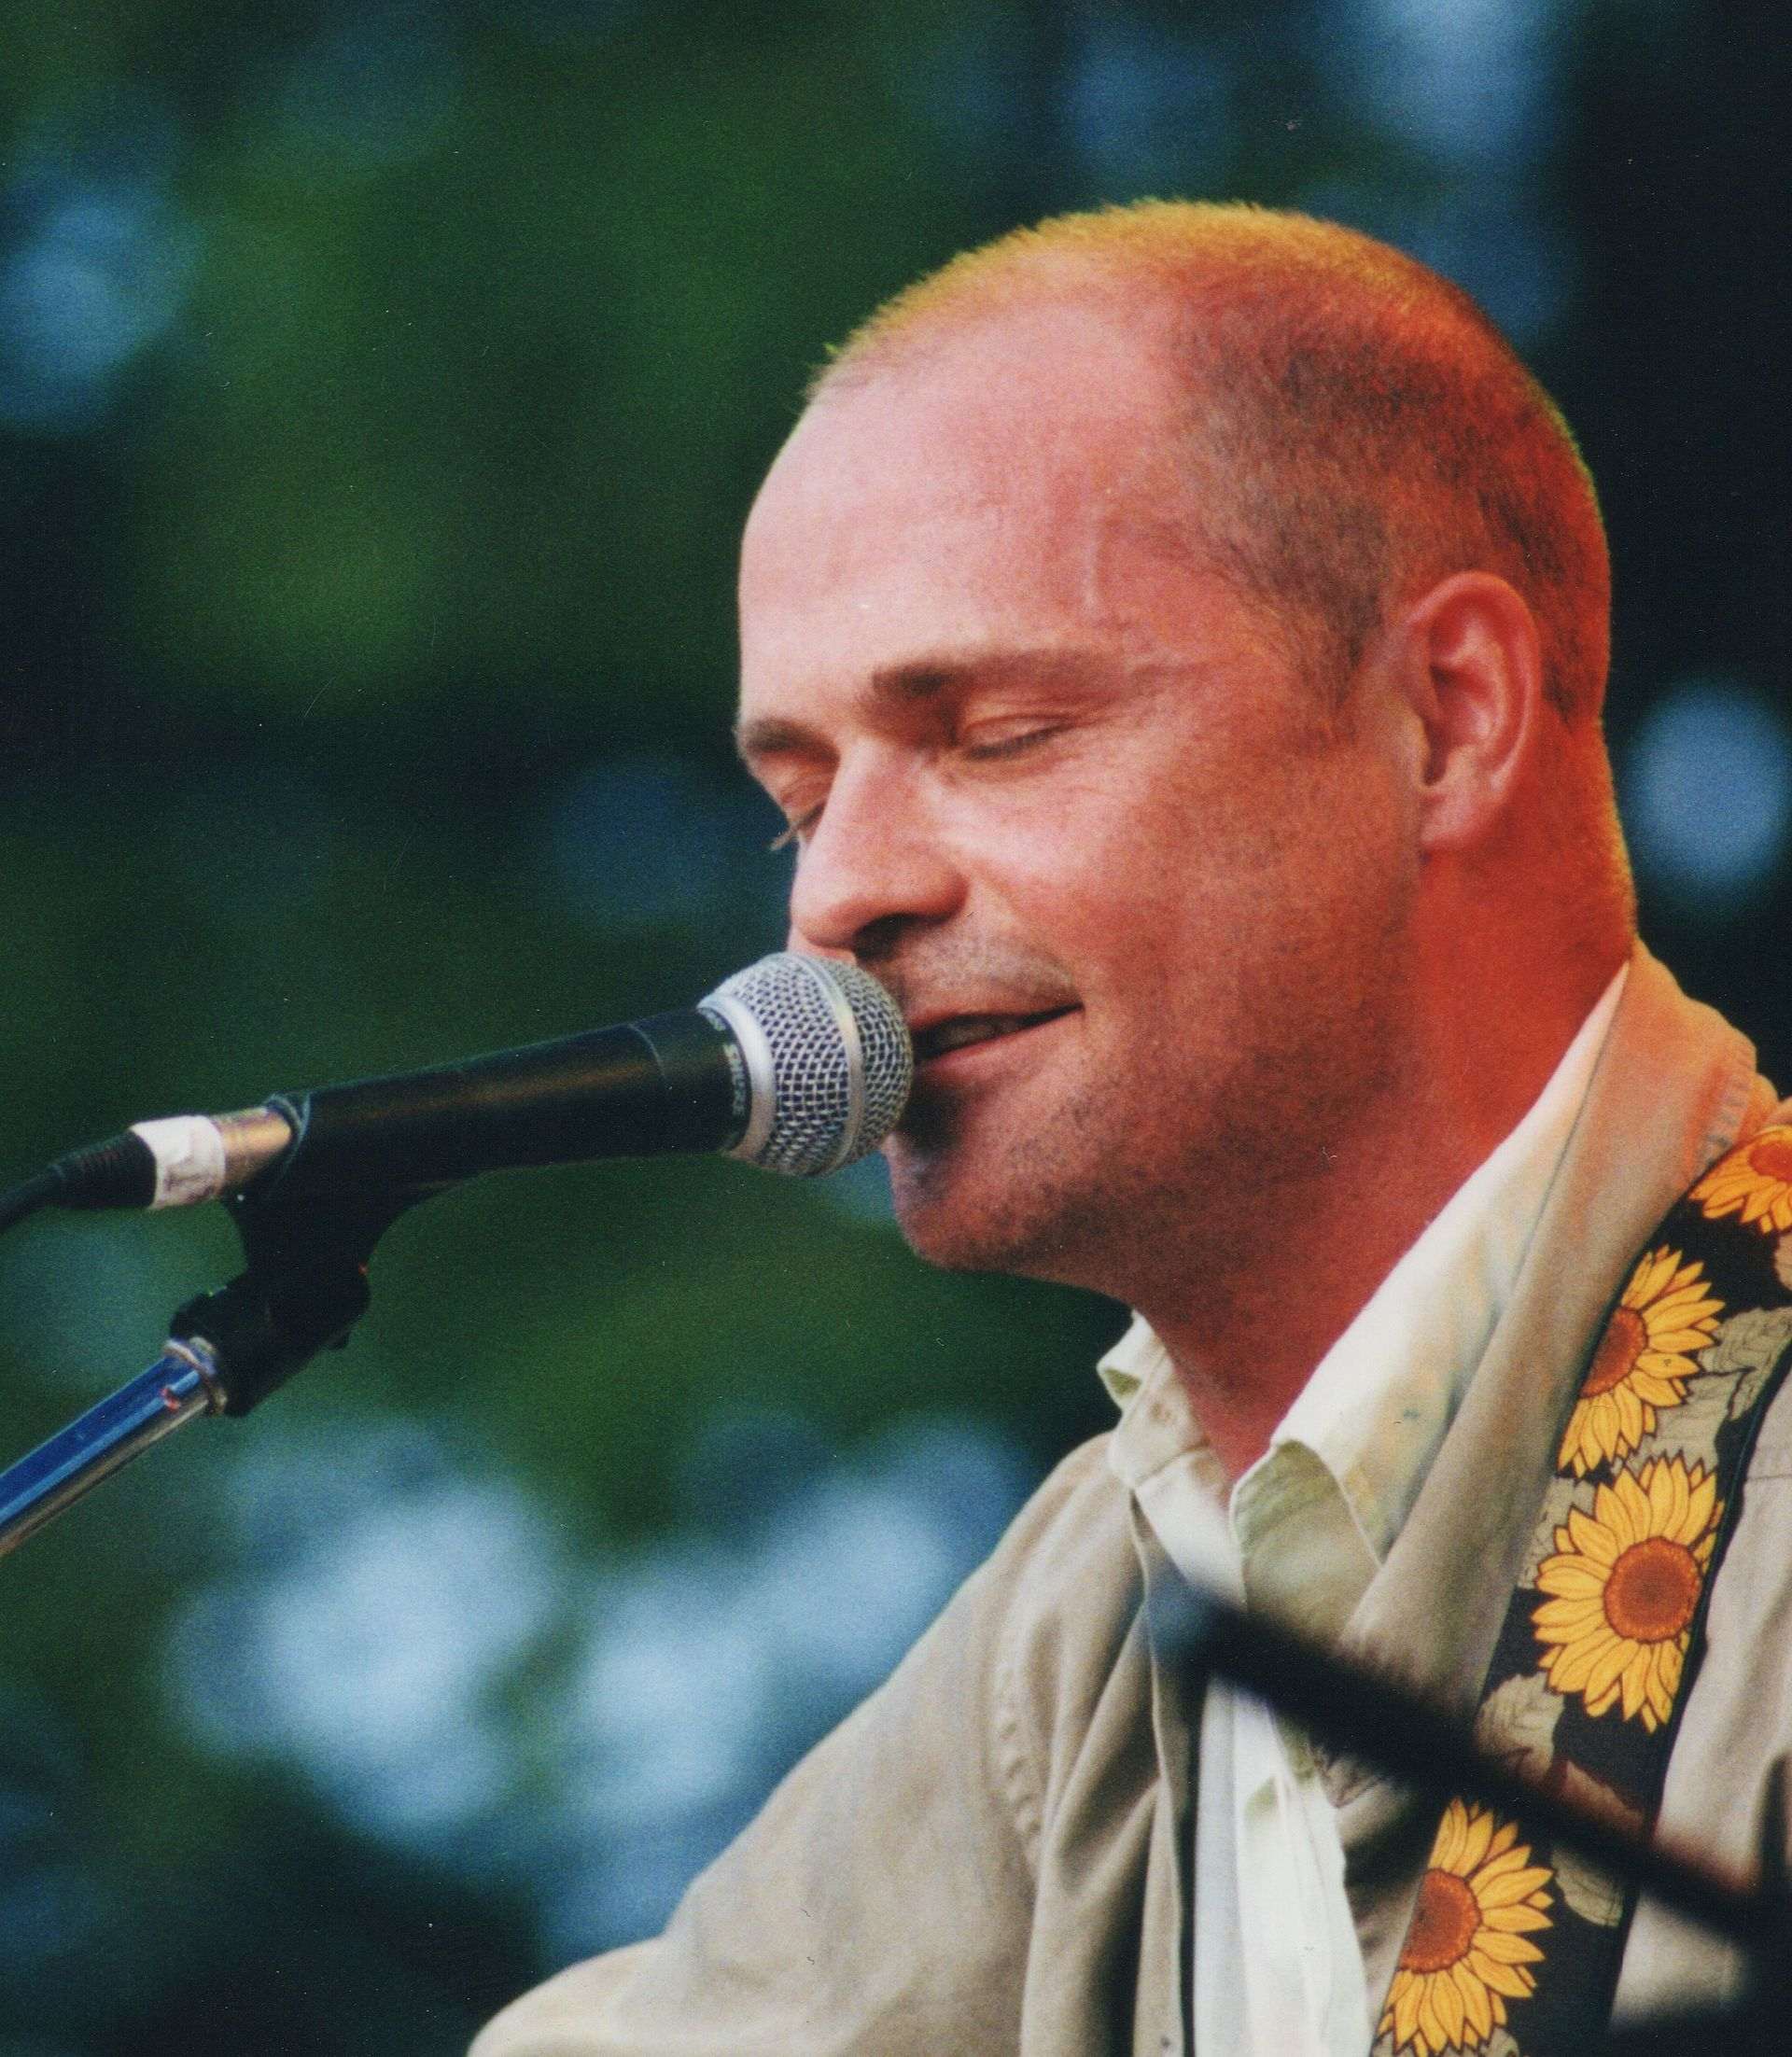 Gord Downie Solo Cd With His Oil Painting On It